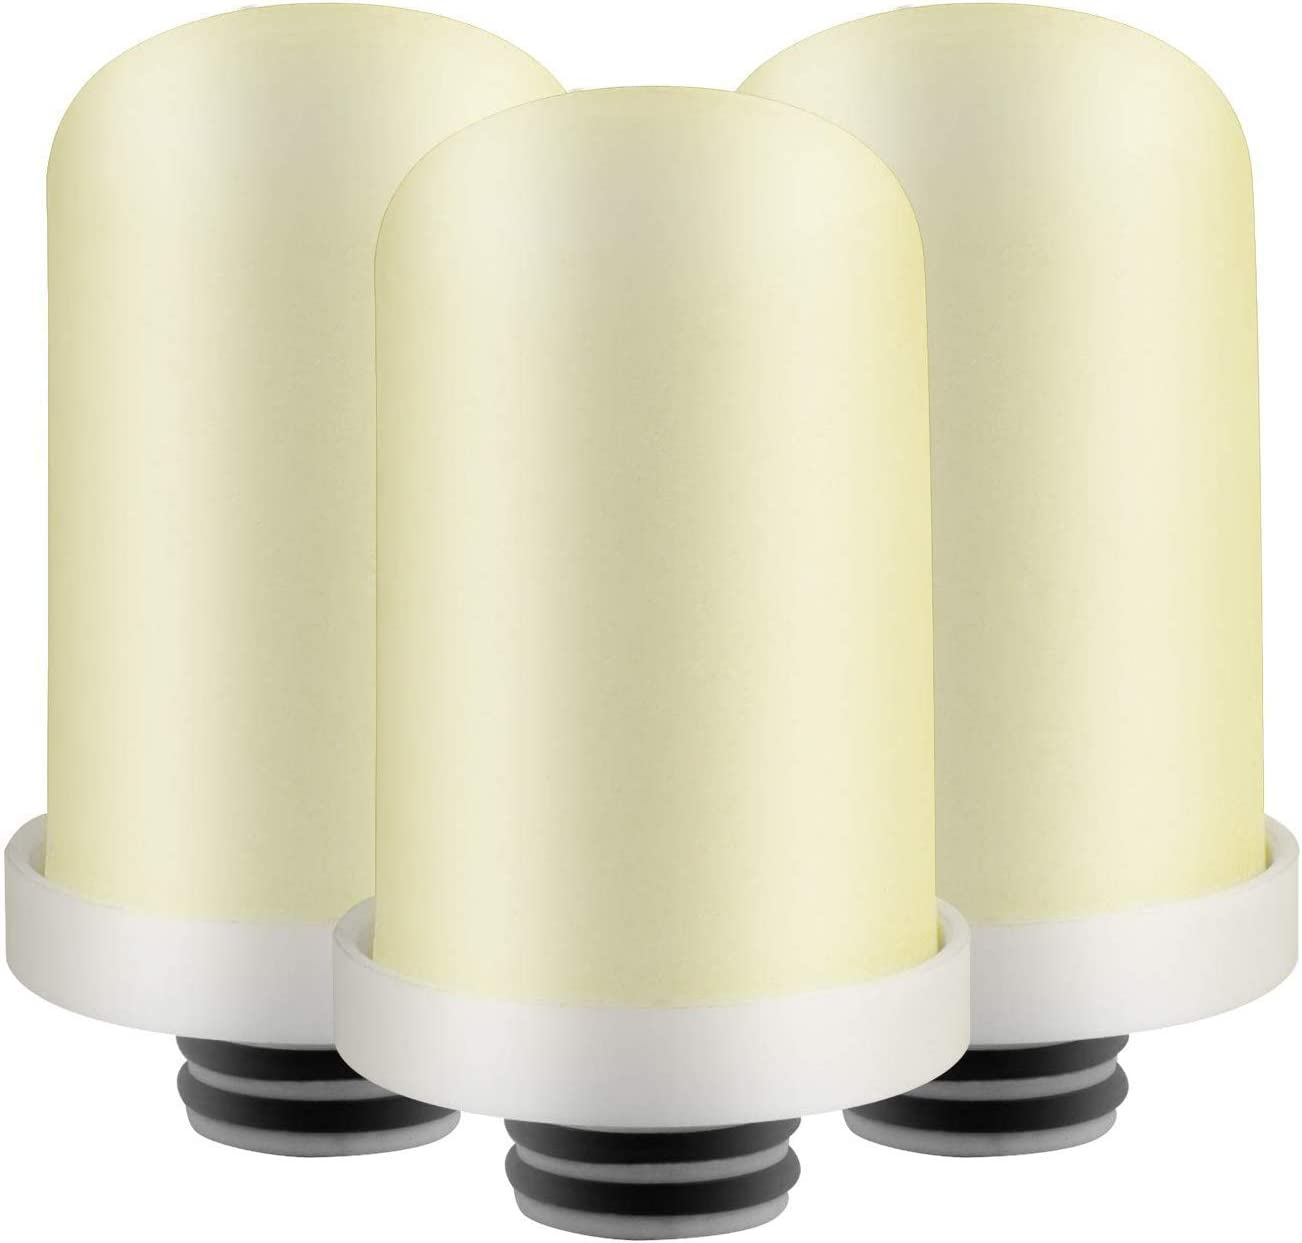 Geekpure Replacement Filter Set for Advanced TF-3 Faucet Water Filteration Pack of 3